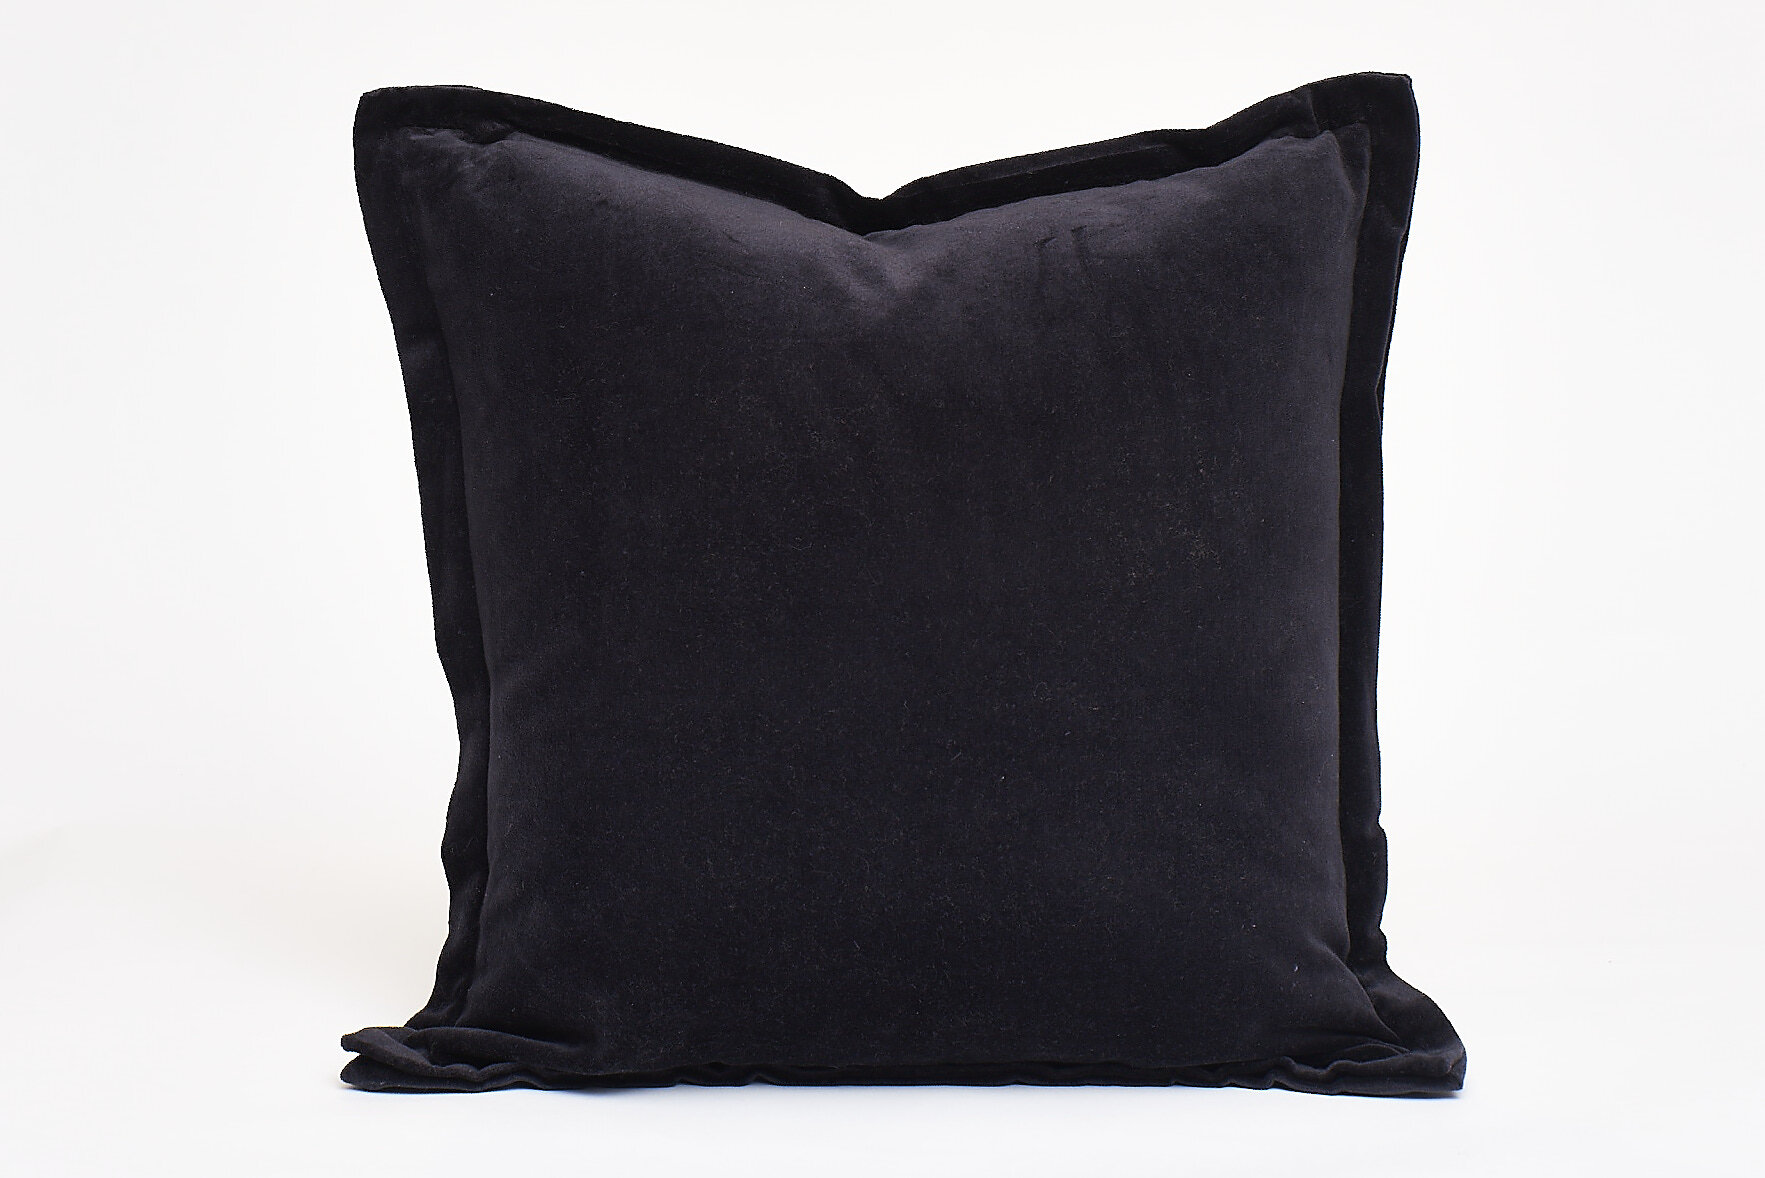 Everly Quinn Jepsen Square Pillow Cover Insert Wayfair